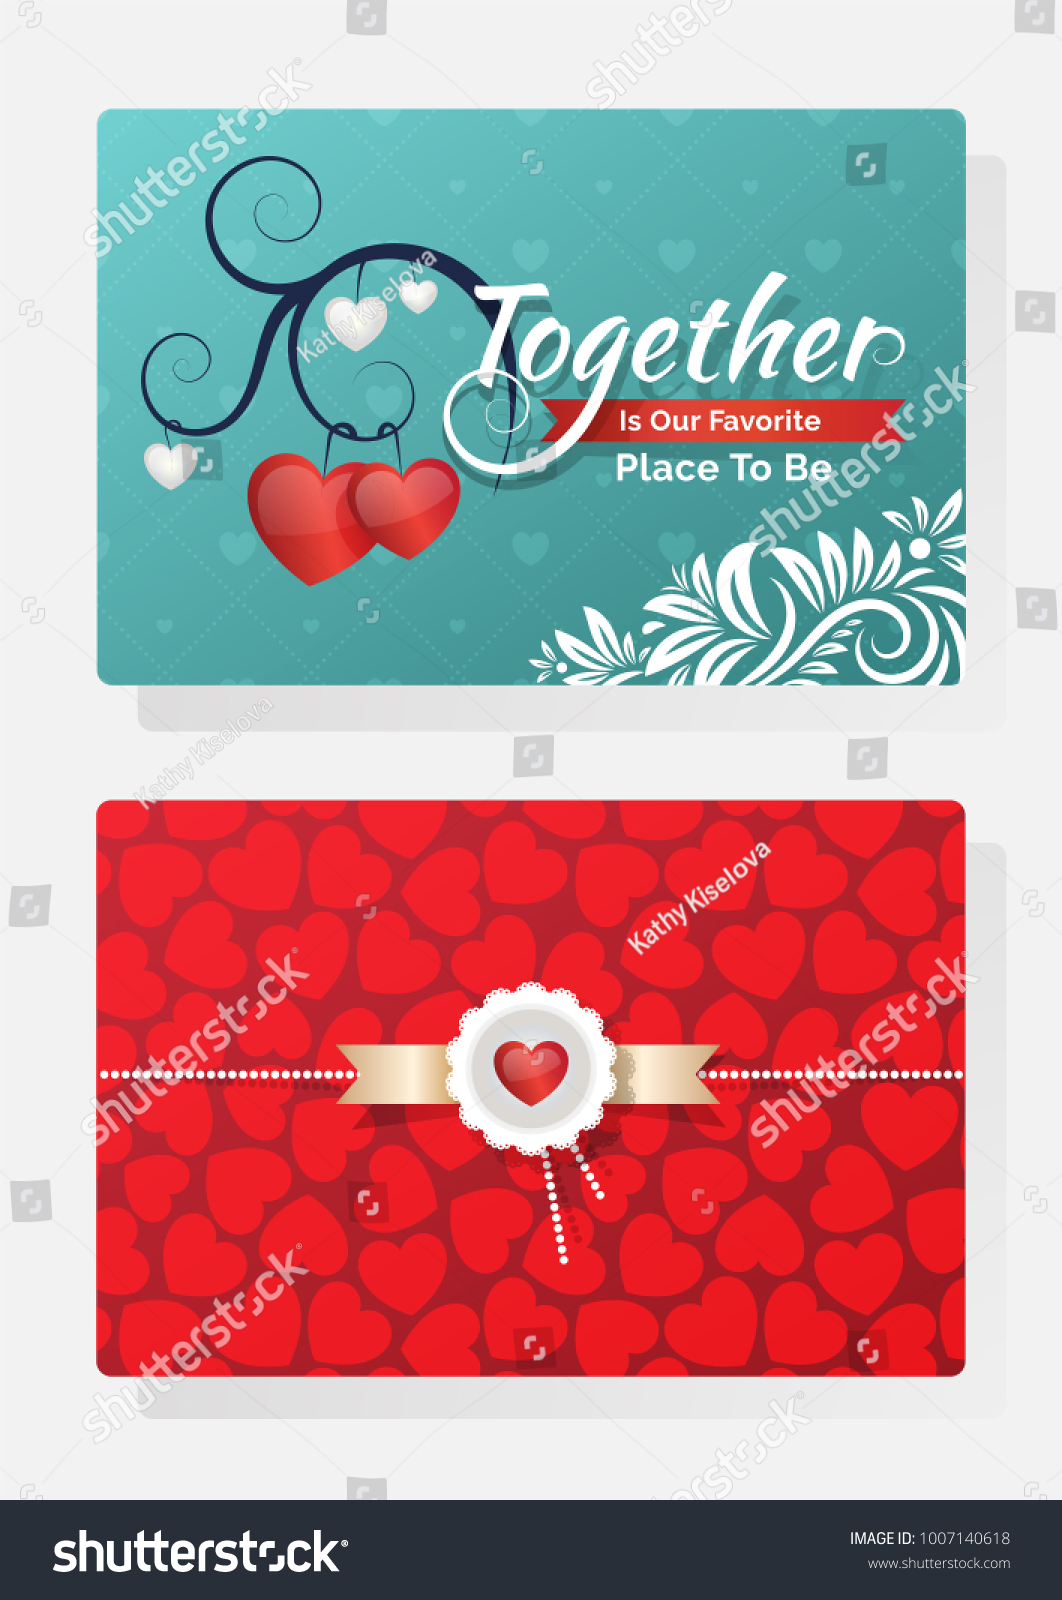 Romantic Valentines Day Invitation Card Text Stock Vector (Royalty ...